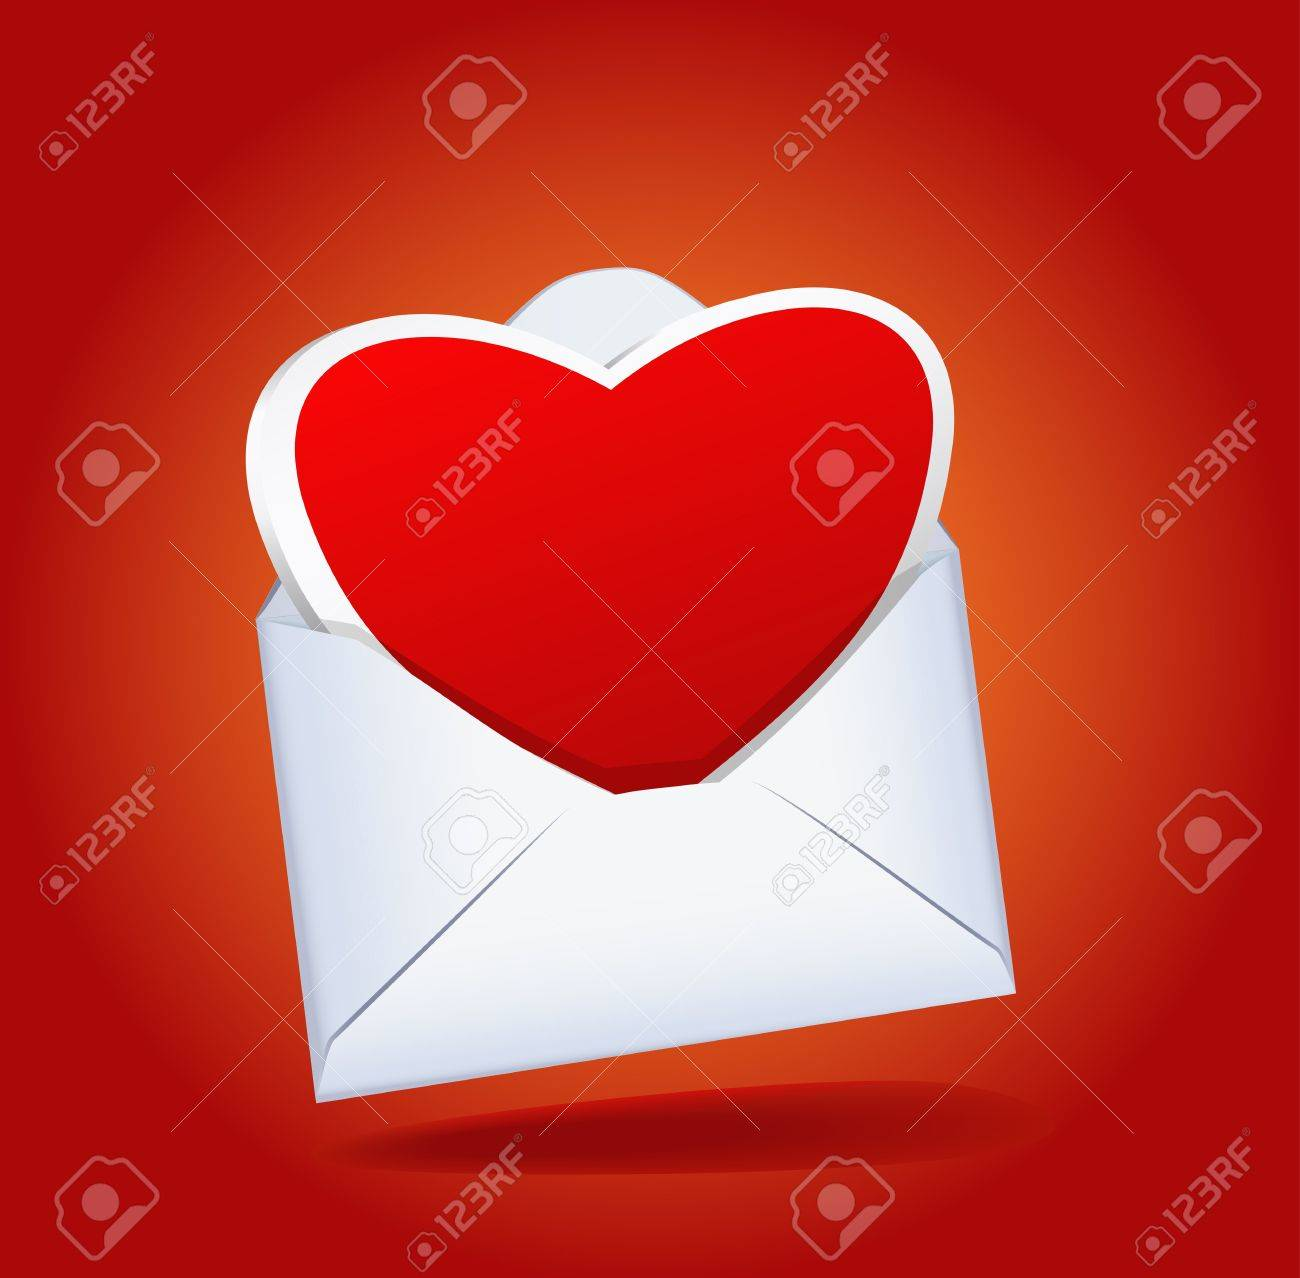 Heart and a mailing envelope on the red background are shown in the image. Stock Vector - 11914116